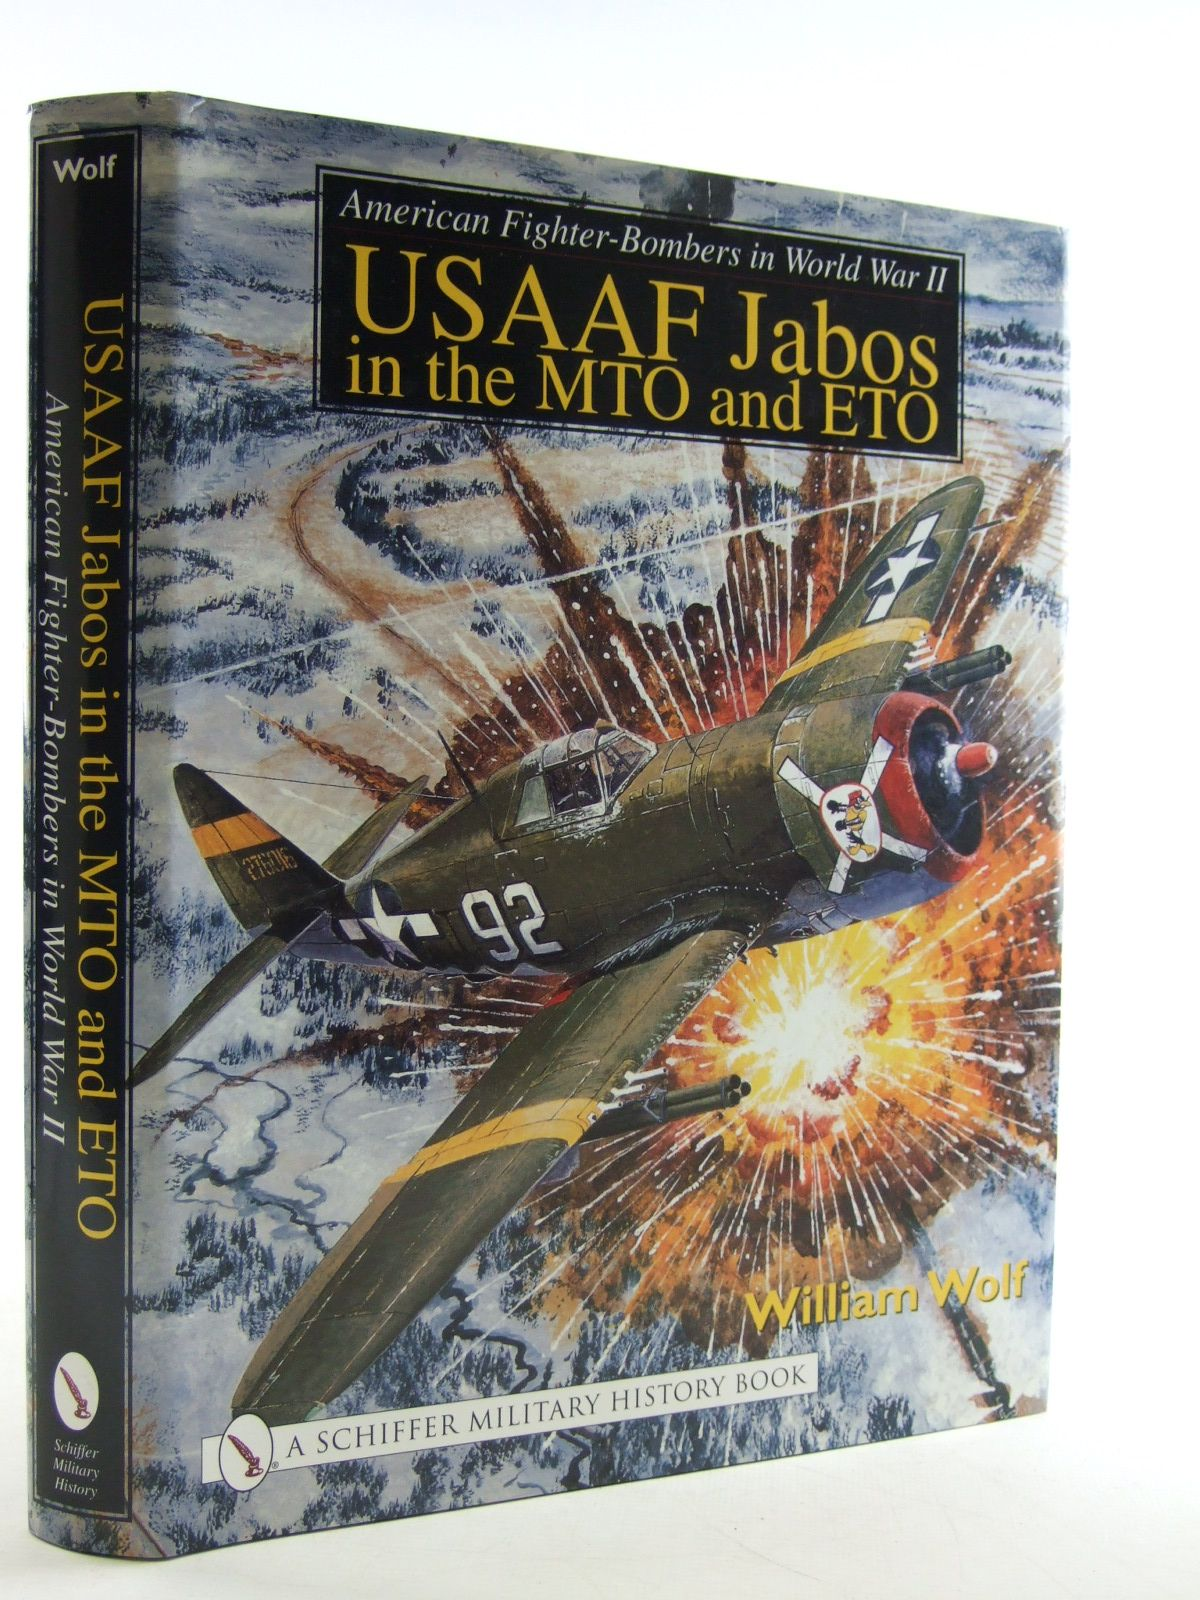 Photo of AMERICAN FIGHTER-BOMBERS IN WORLD WAR II USAAF JABOS IN THE MTO AND ETO written by Wolf, William published by Schiffer Military History (STOCK CODE: 1603916)  for sale by Stella & Rose's Books